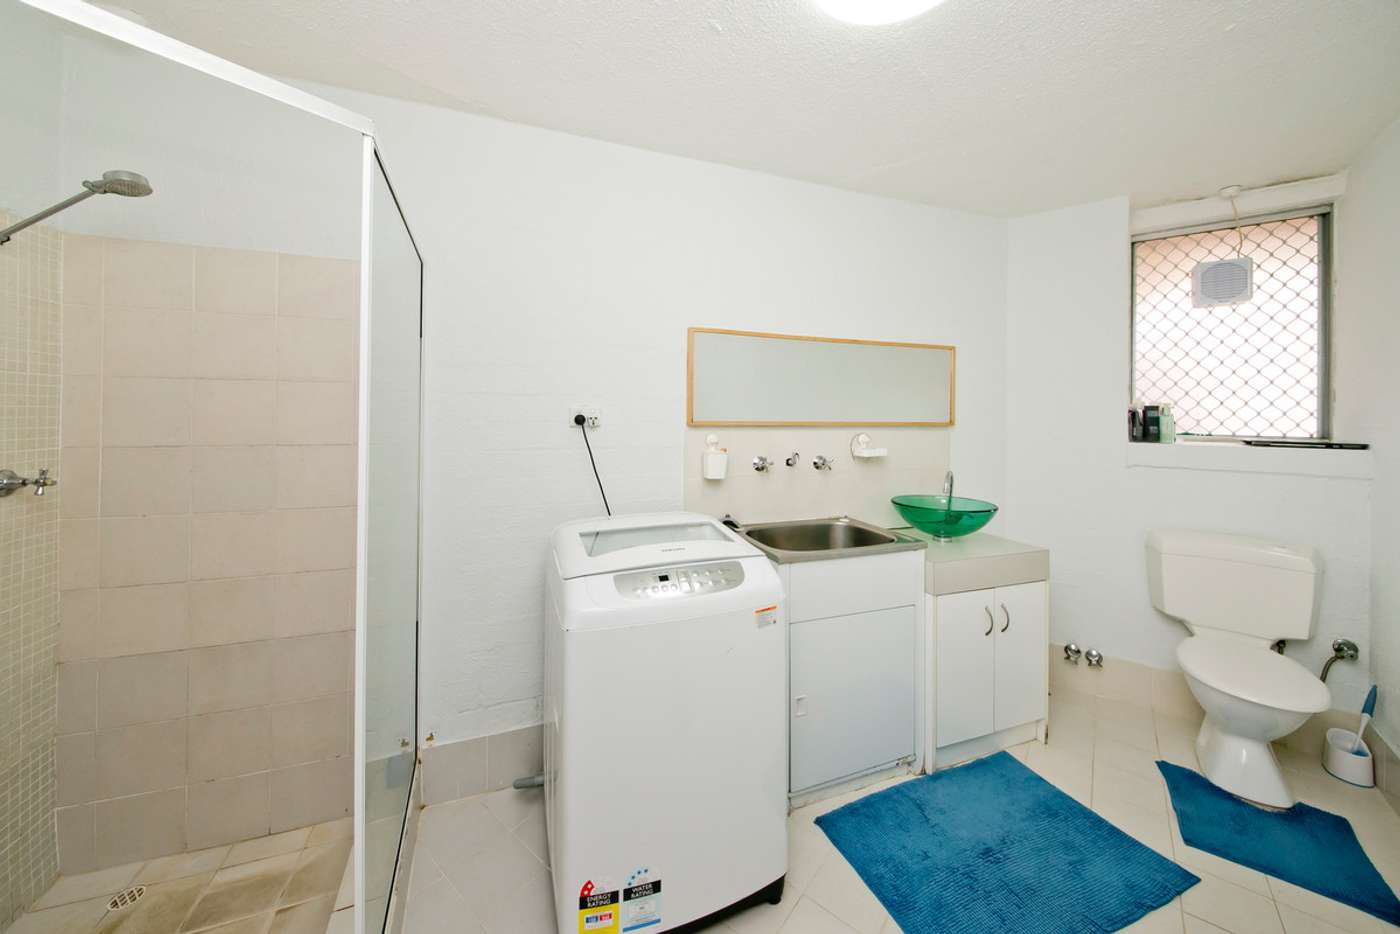 Sixth view of Homely apartment listing, 21A/49 Herdsman Parade, Wembley WA 6014